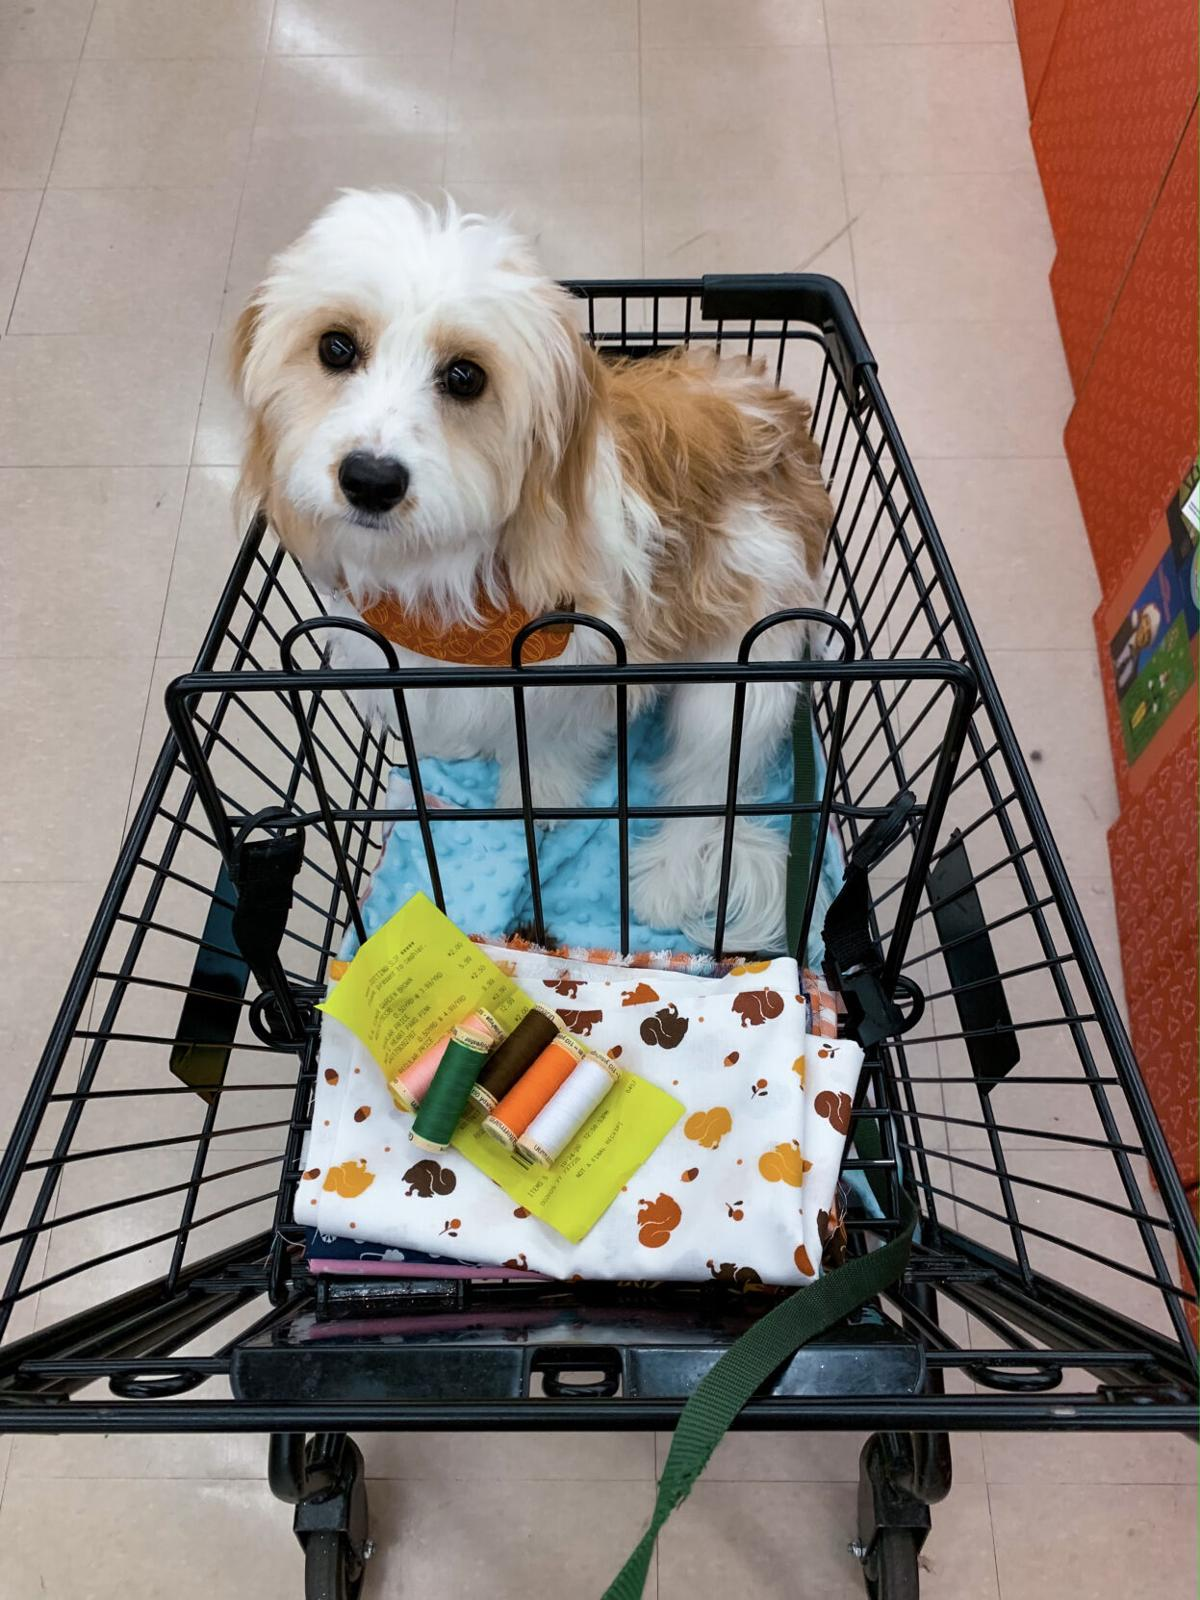 Finley in the cart